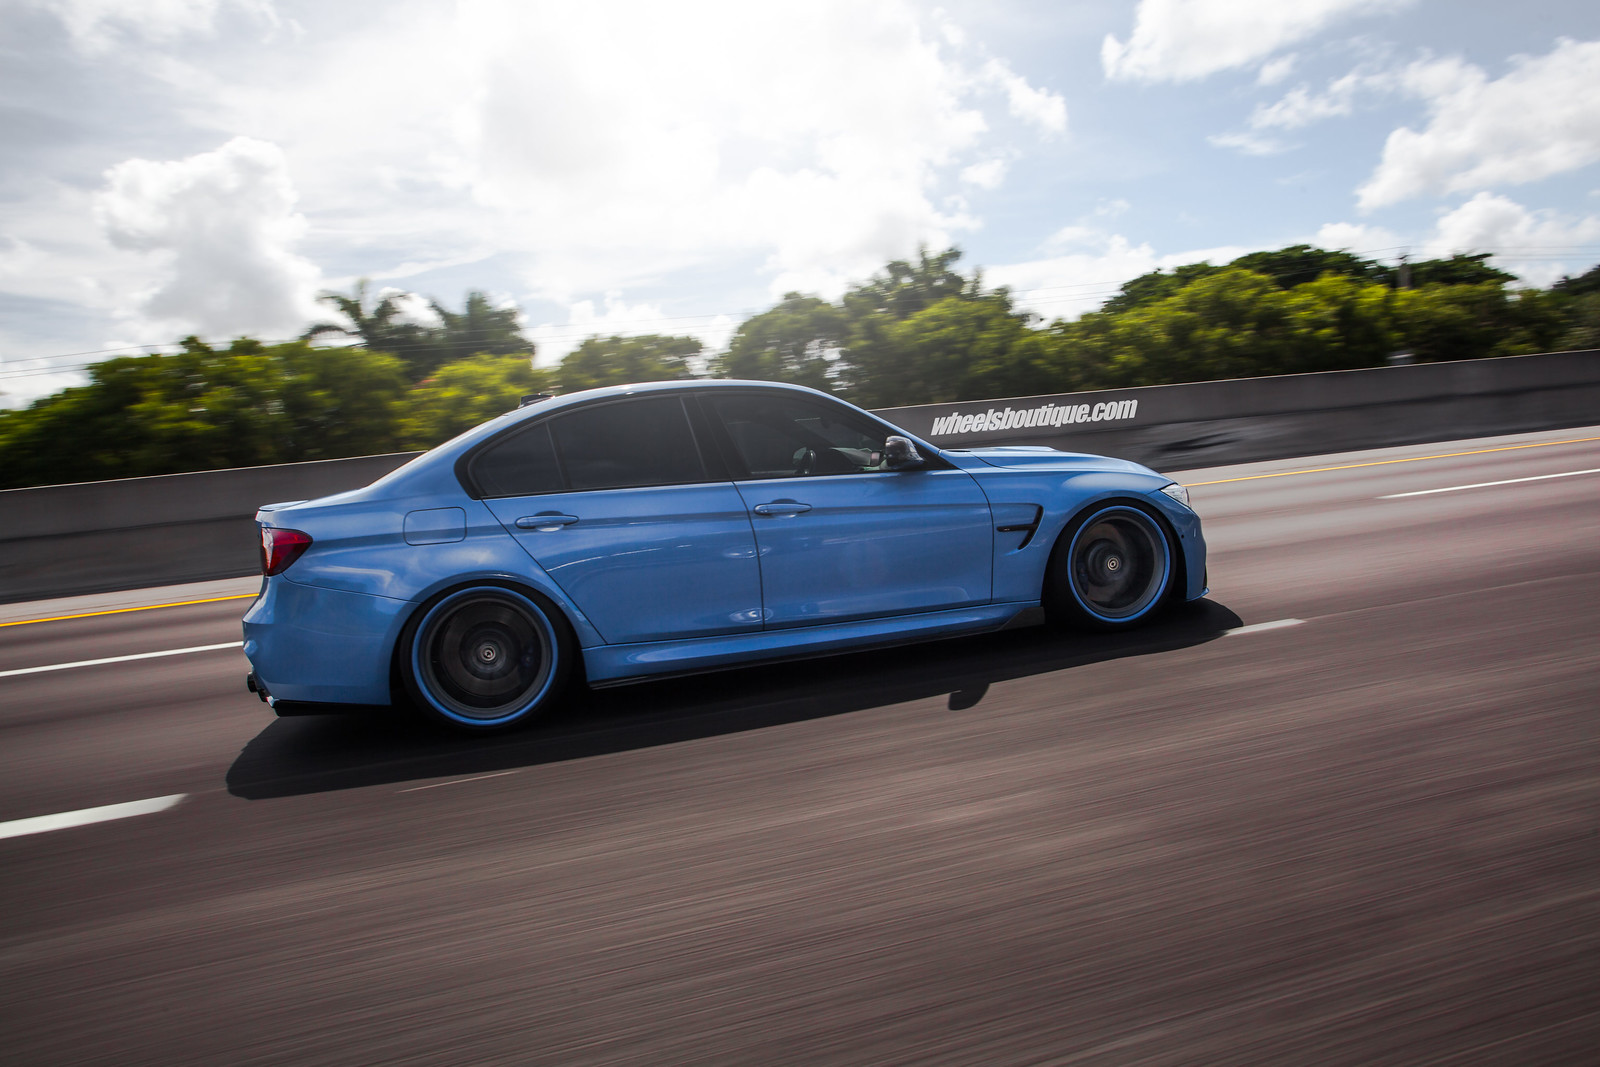 The official hre wheels photo gallery for bmw f80 f82 m3 and m4 page 11